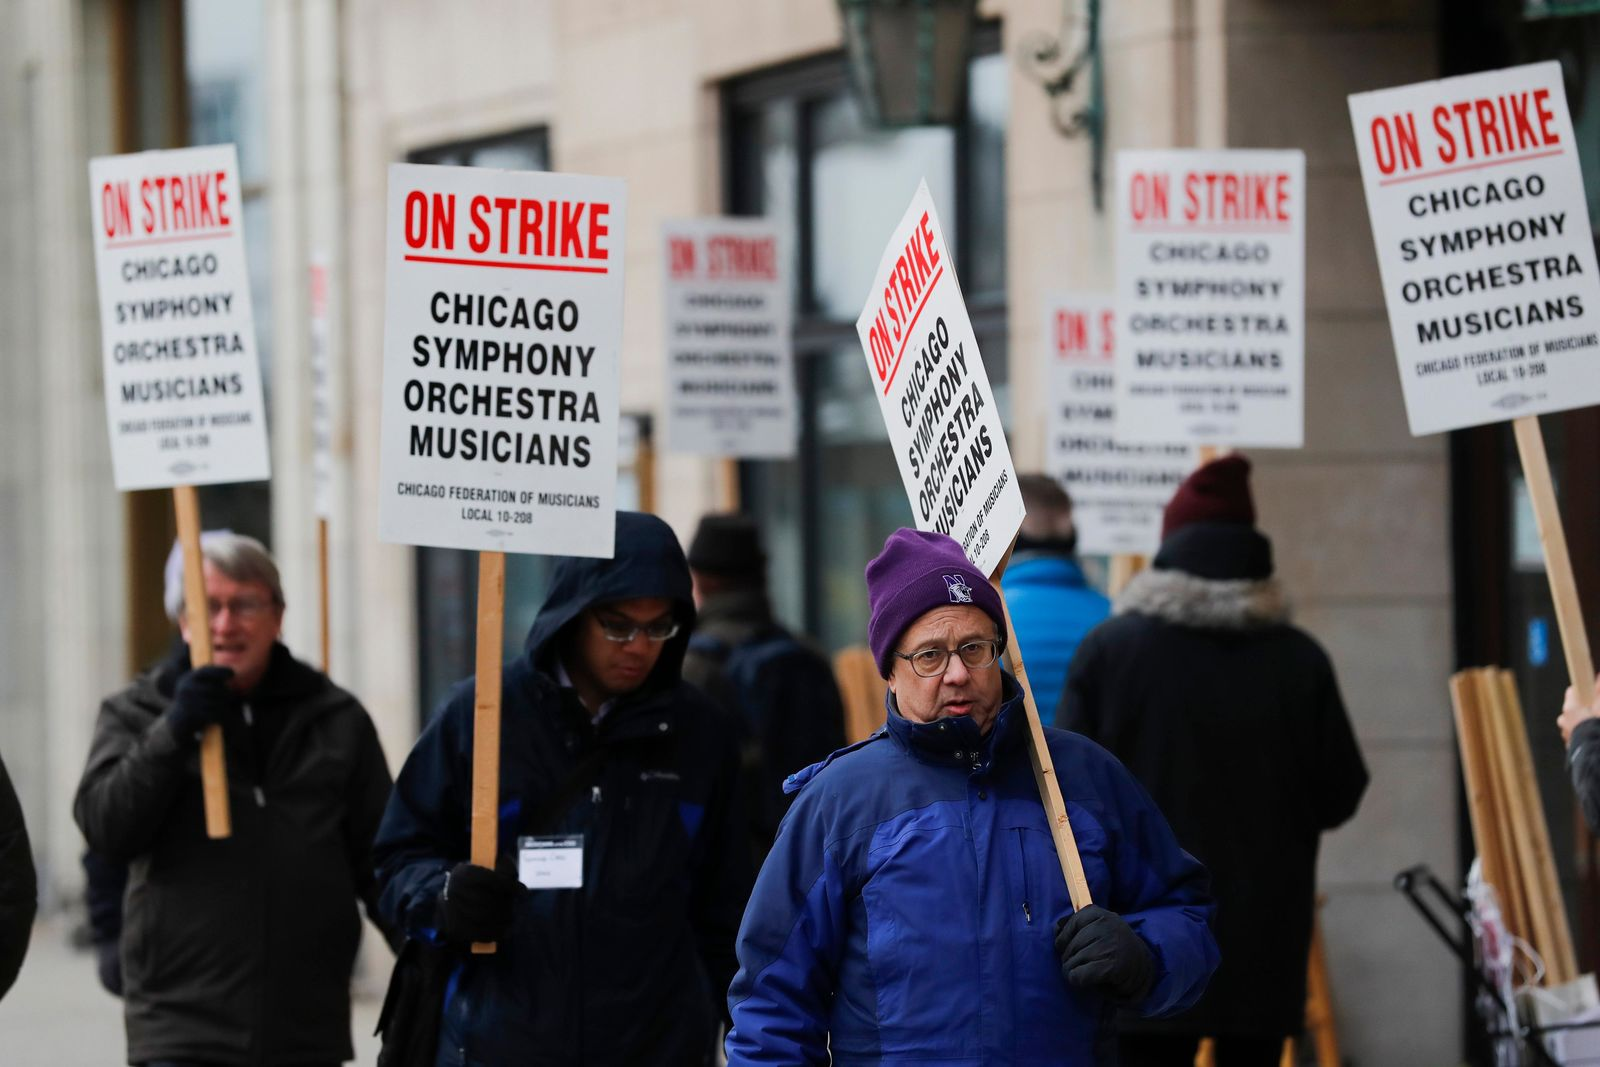 Striking Chicago Symphony Orchestra musicians walk the picket line after a lack of progress in contract talks outside of Symphony Center in Chicago on Monday, March 11, 2019. (Jose M. Osorio/Chicago Tribune via AP)